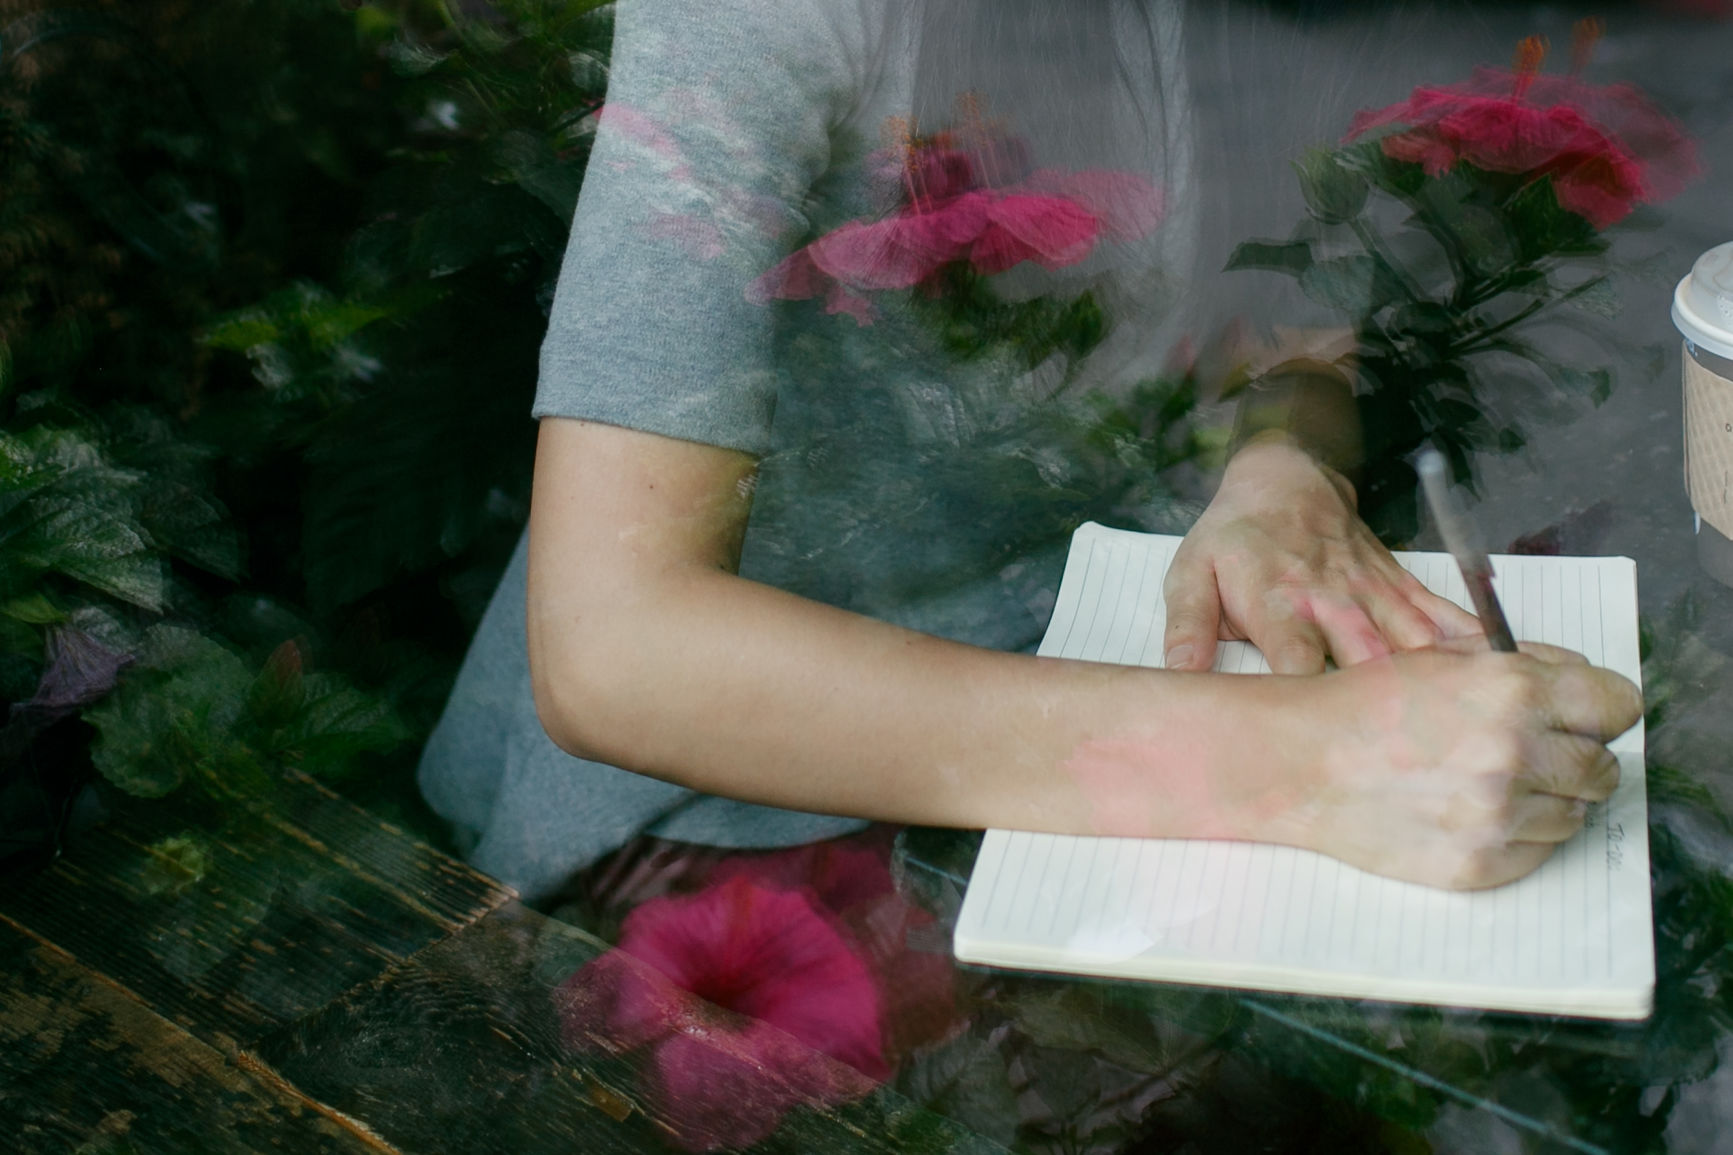 Woman writes in her notebook